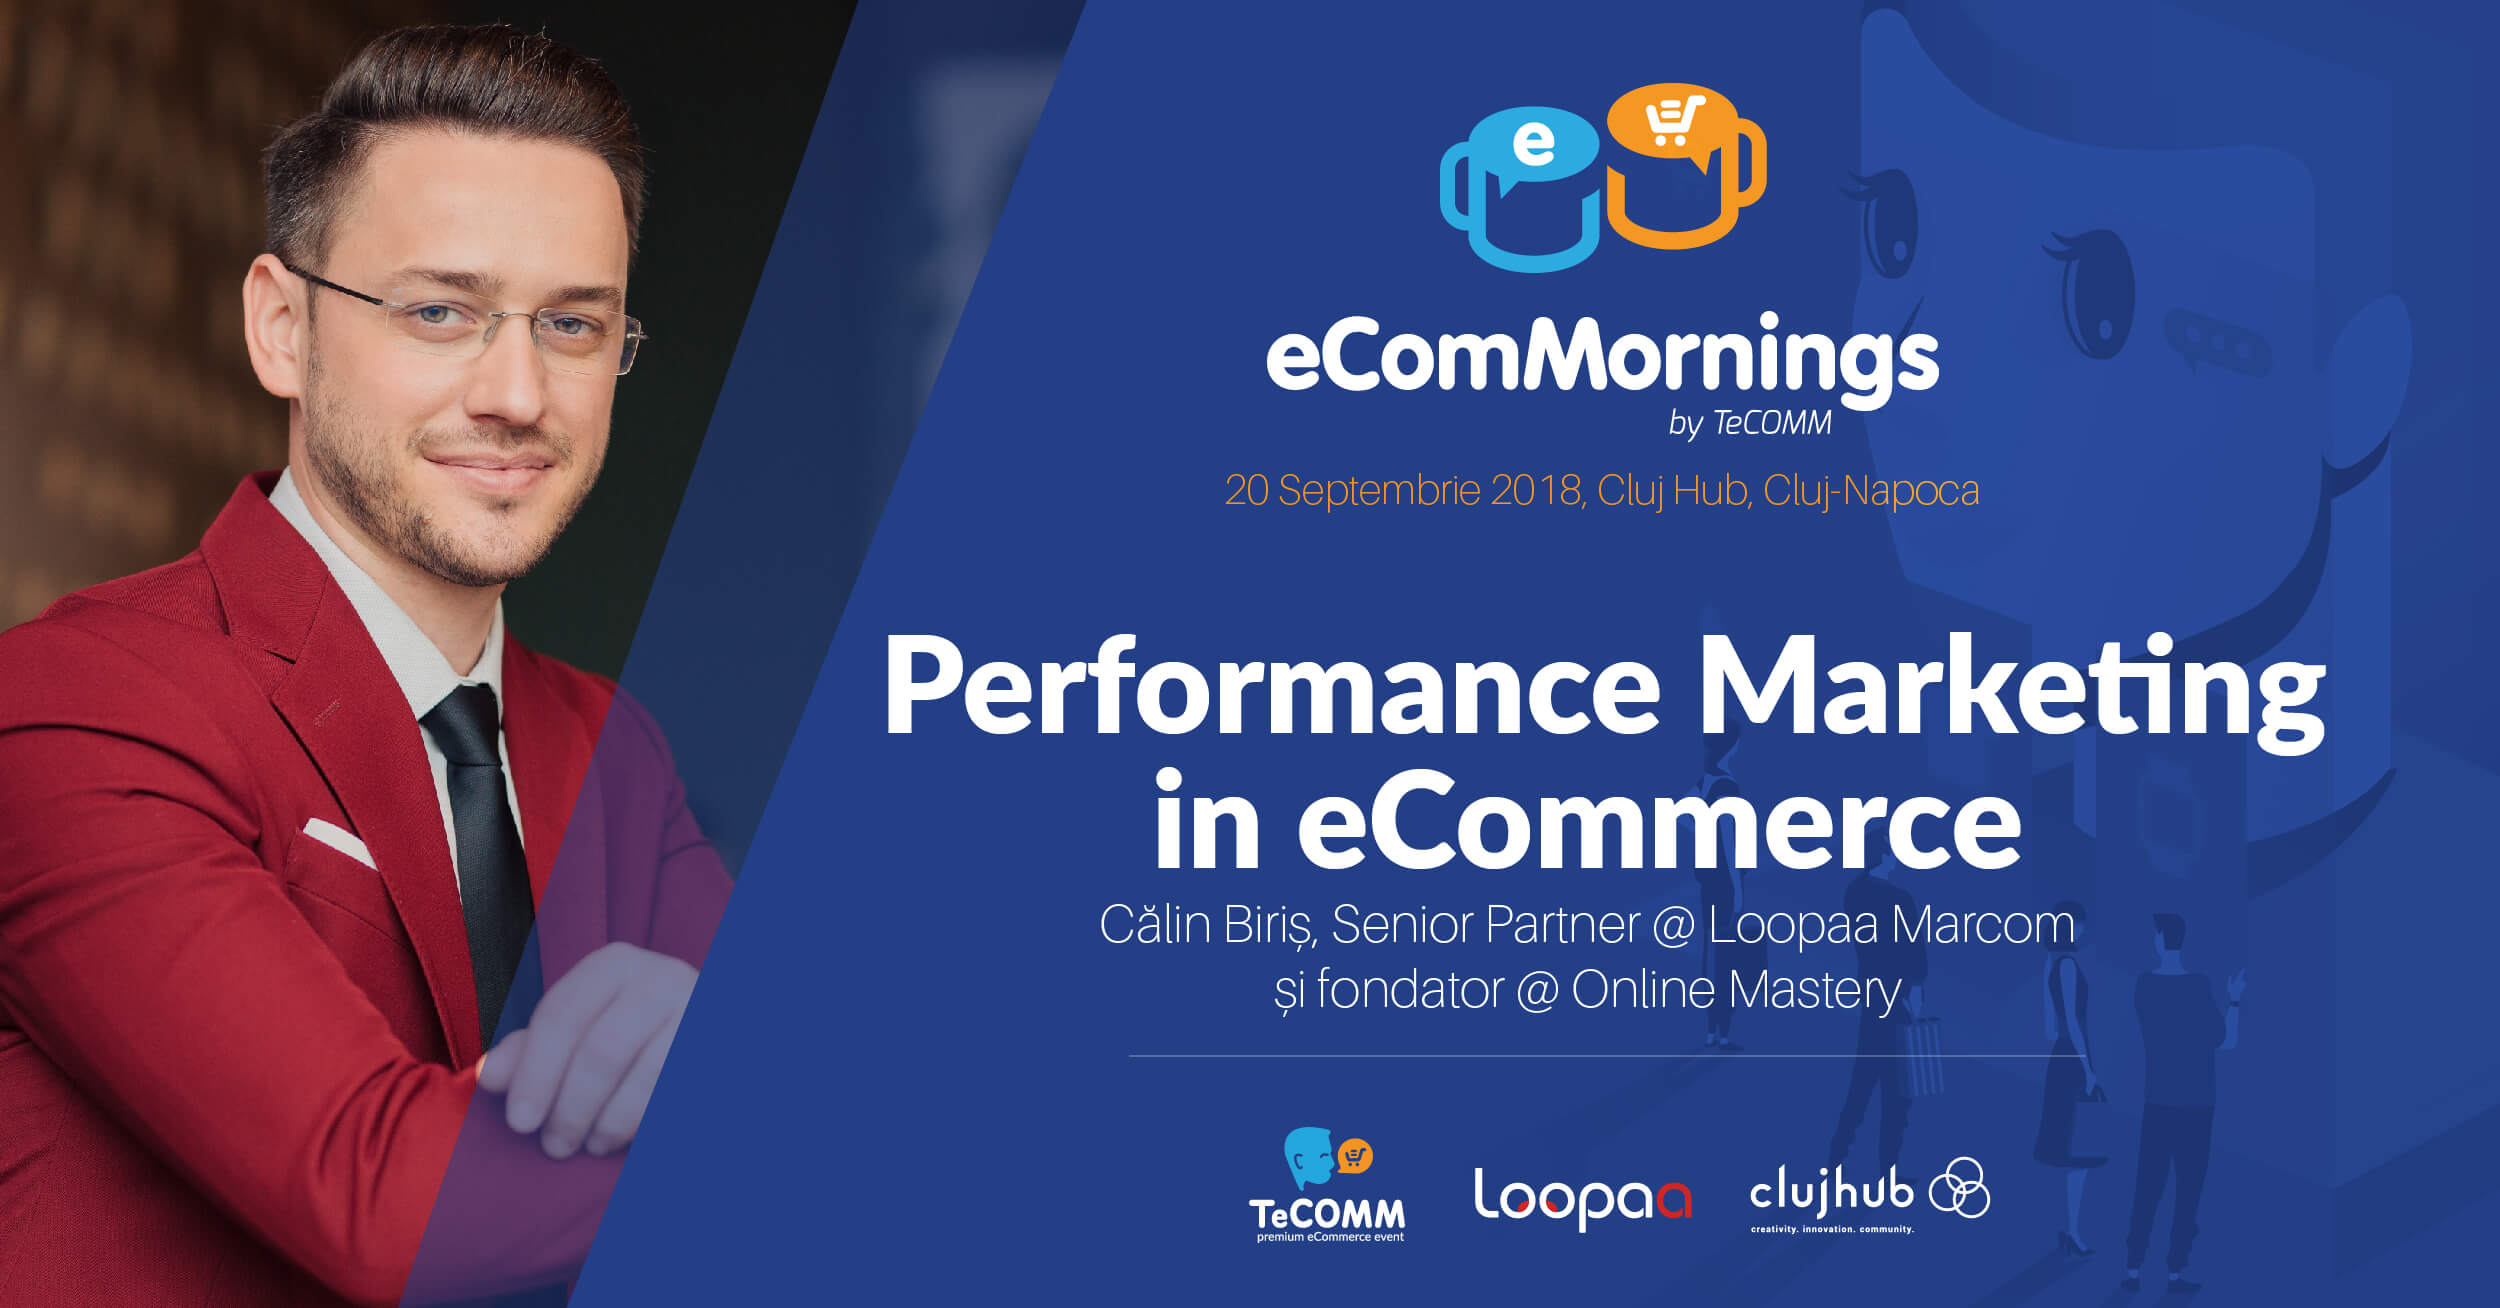 Performance Marketing in ecommerce